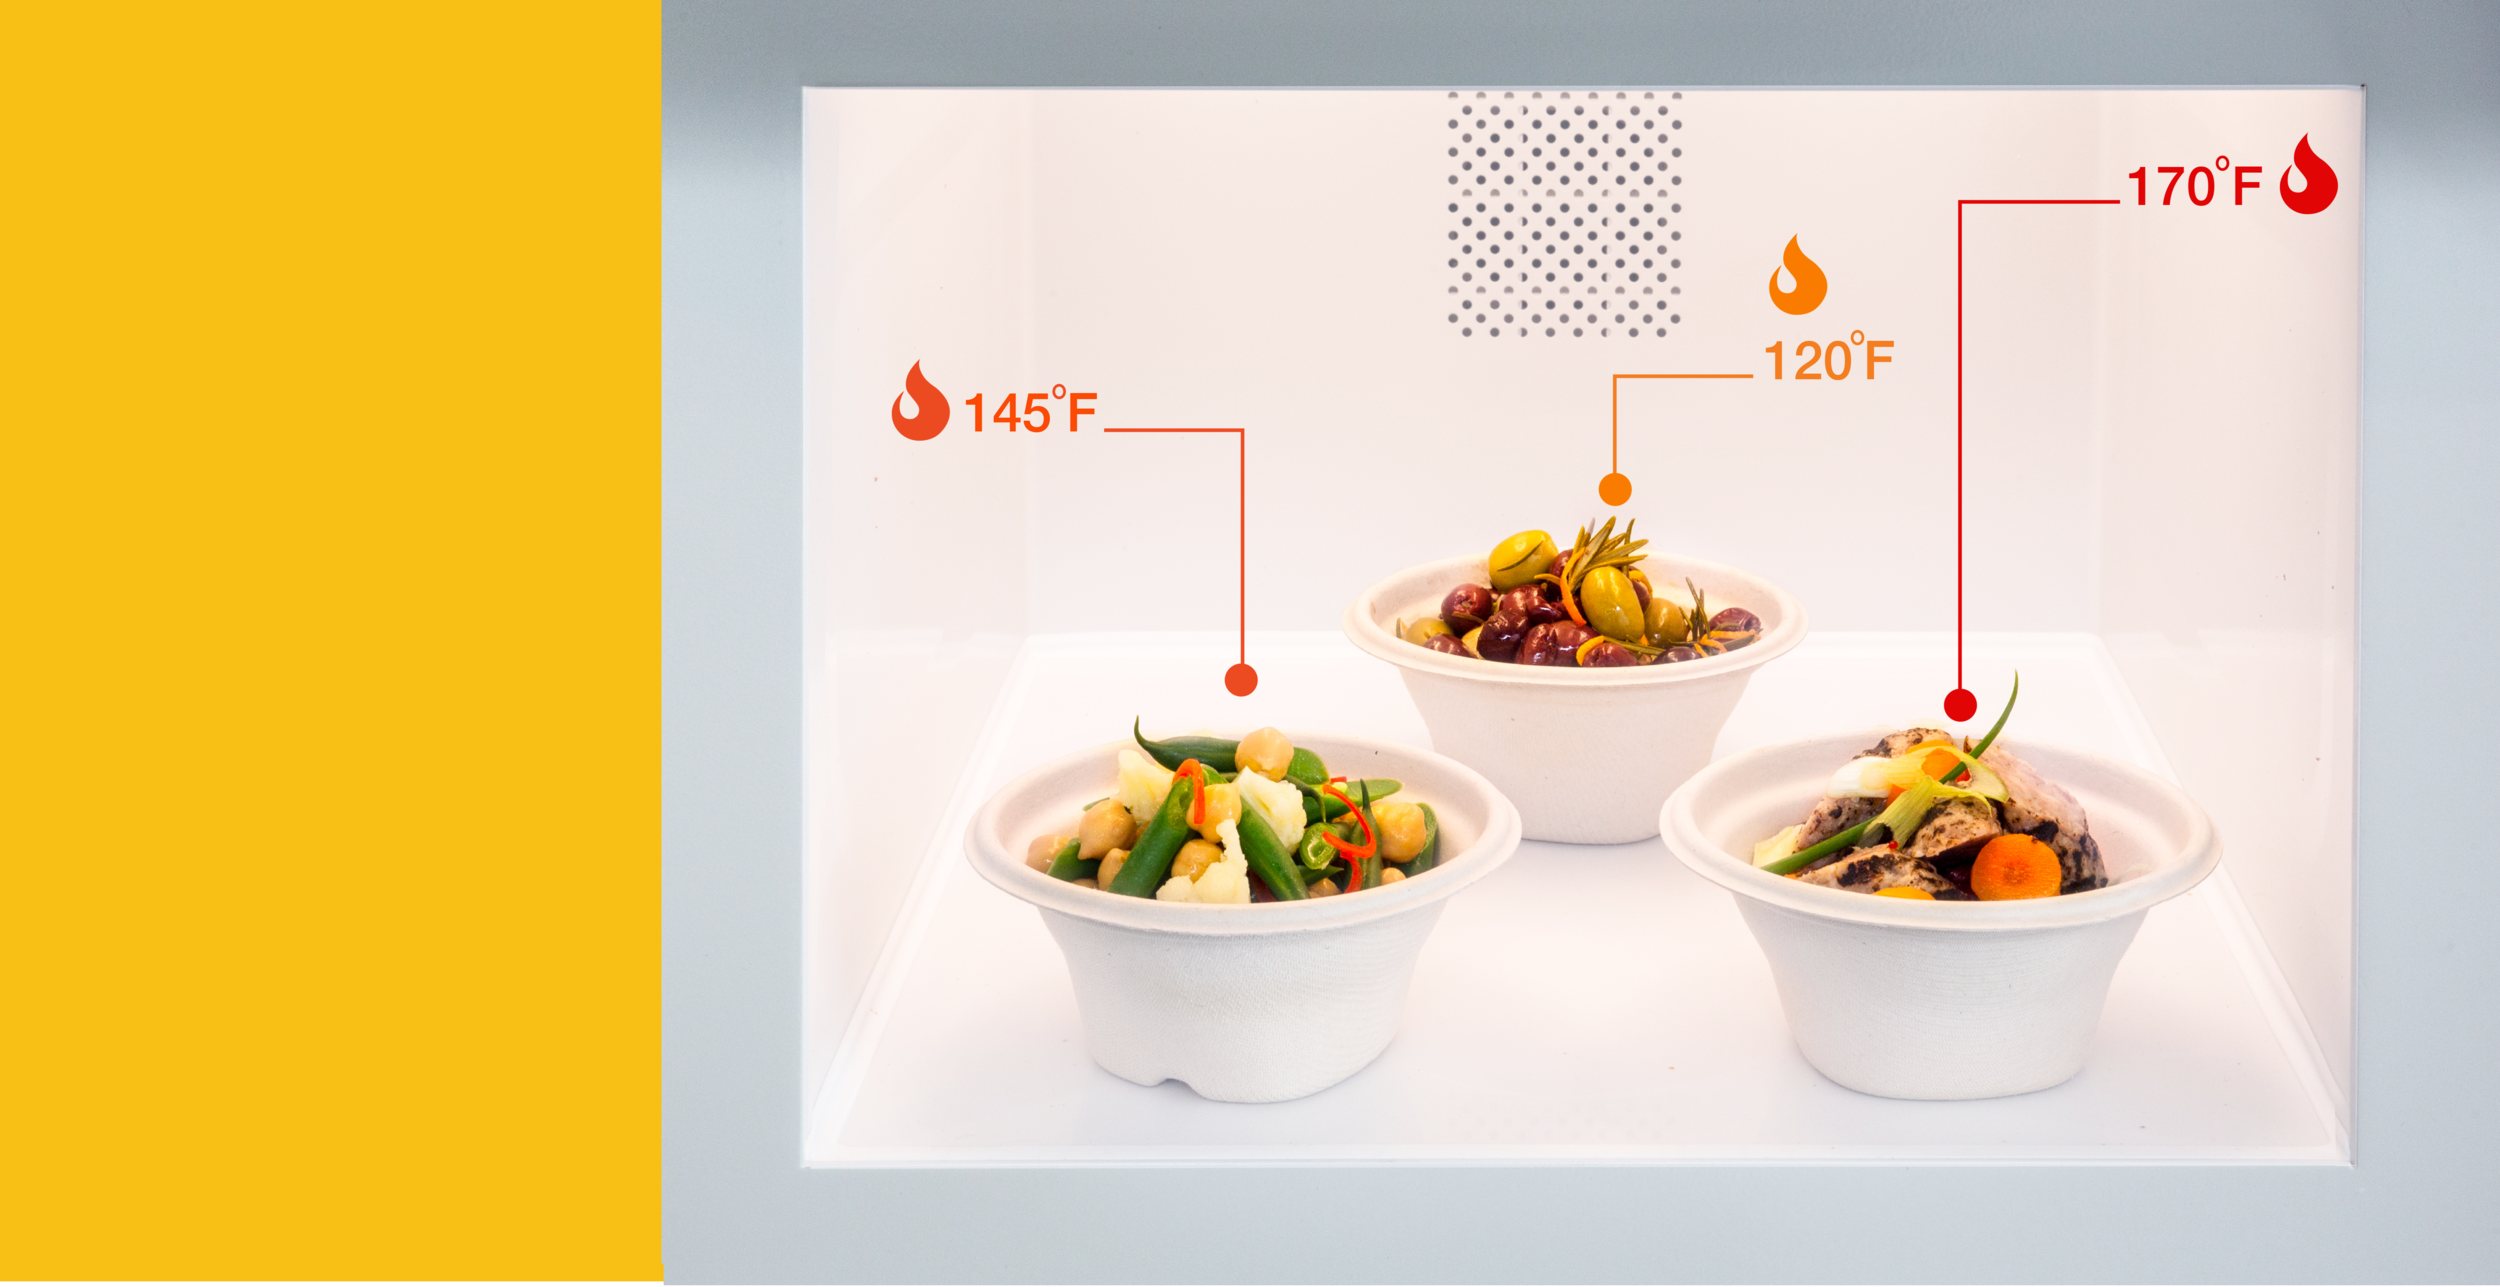 Level Technology—Cook an entire meal at once, each item will get just the right amount of heat to hit the target temperature. -